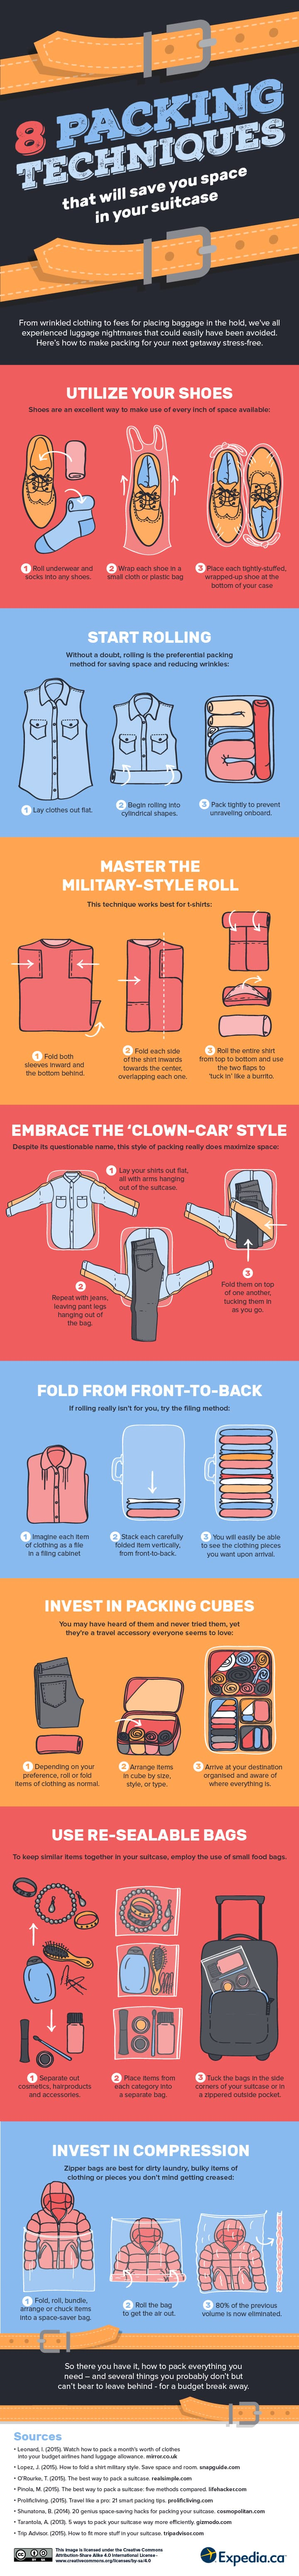 What's the secret to packing properly? Travel company weighs in with top luggage tips